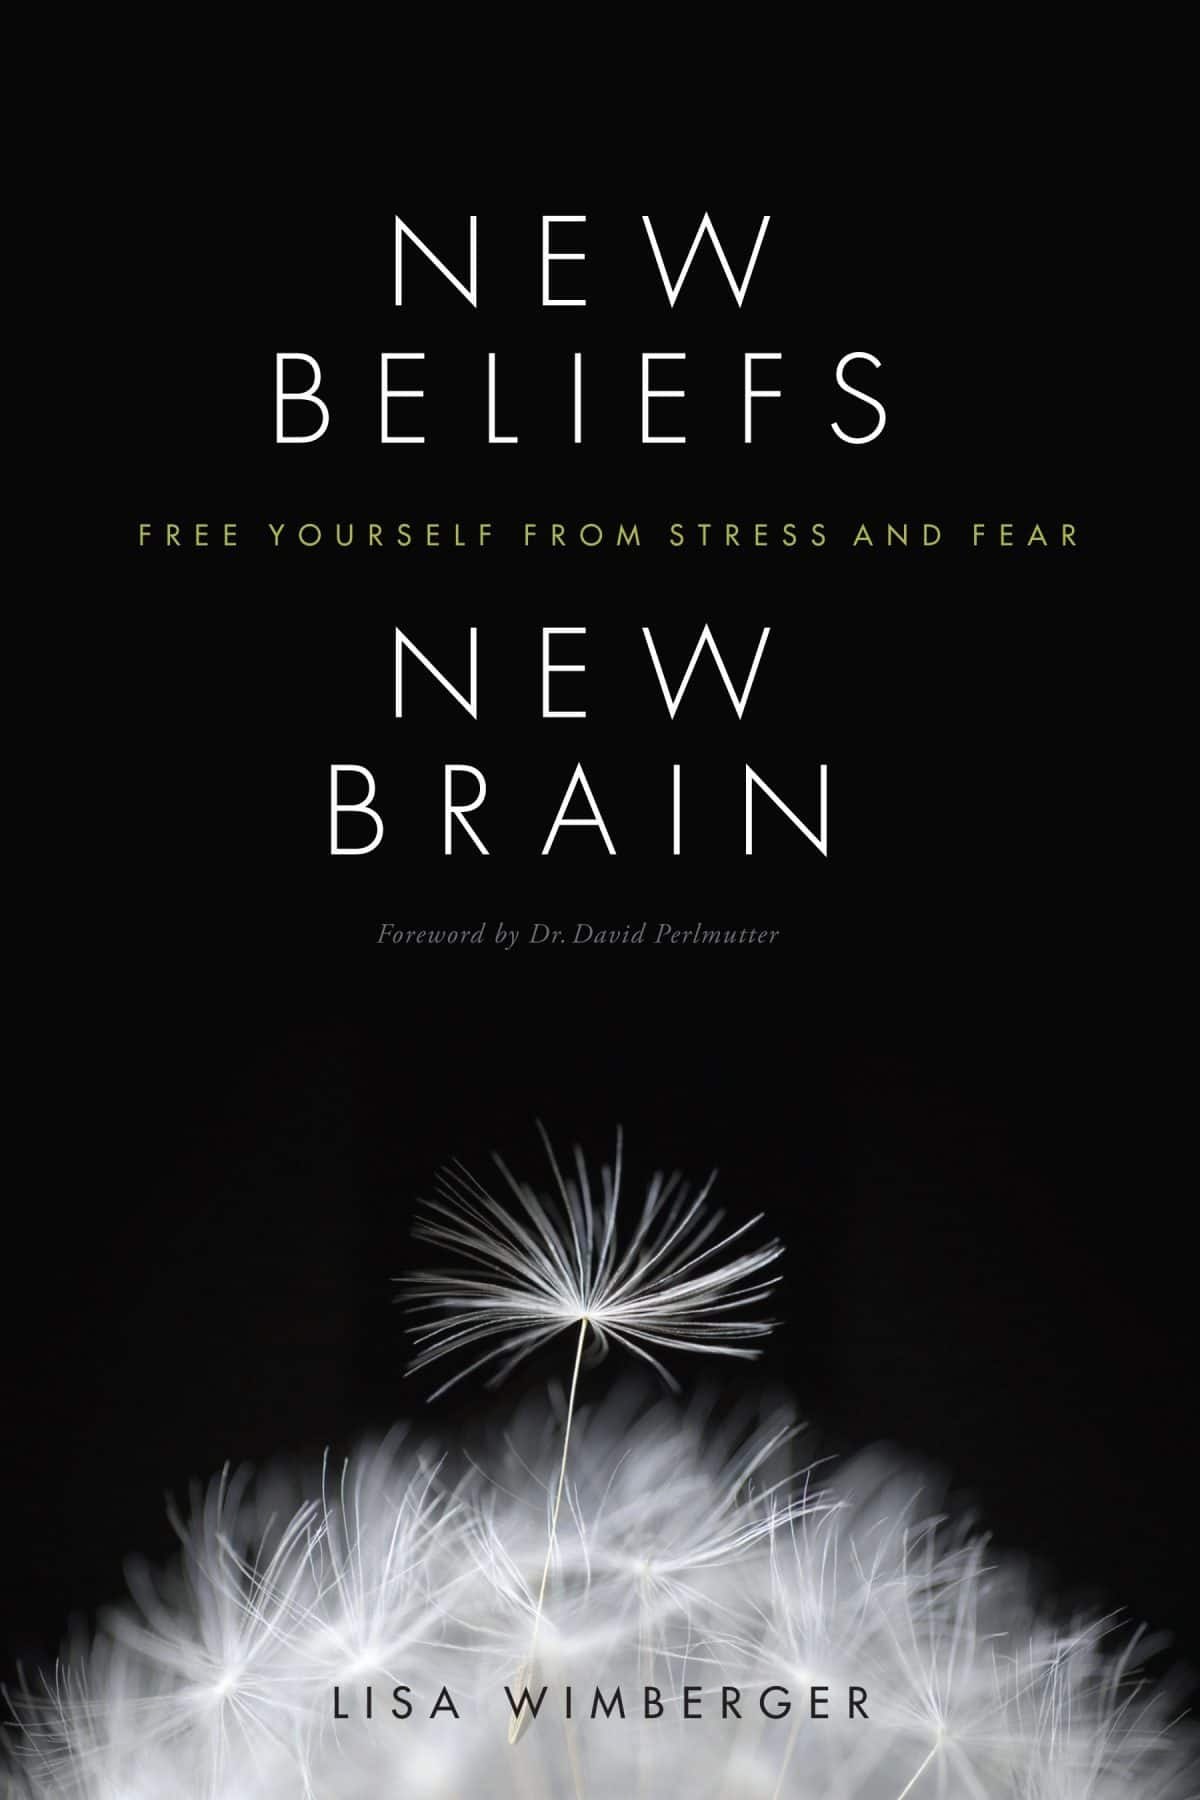 Neutrality Exercise From New Beliefs, New Brain